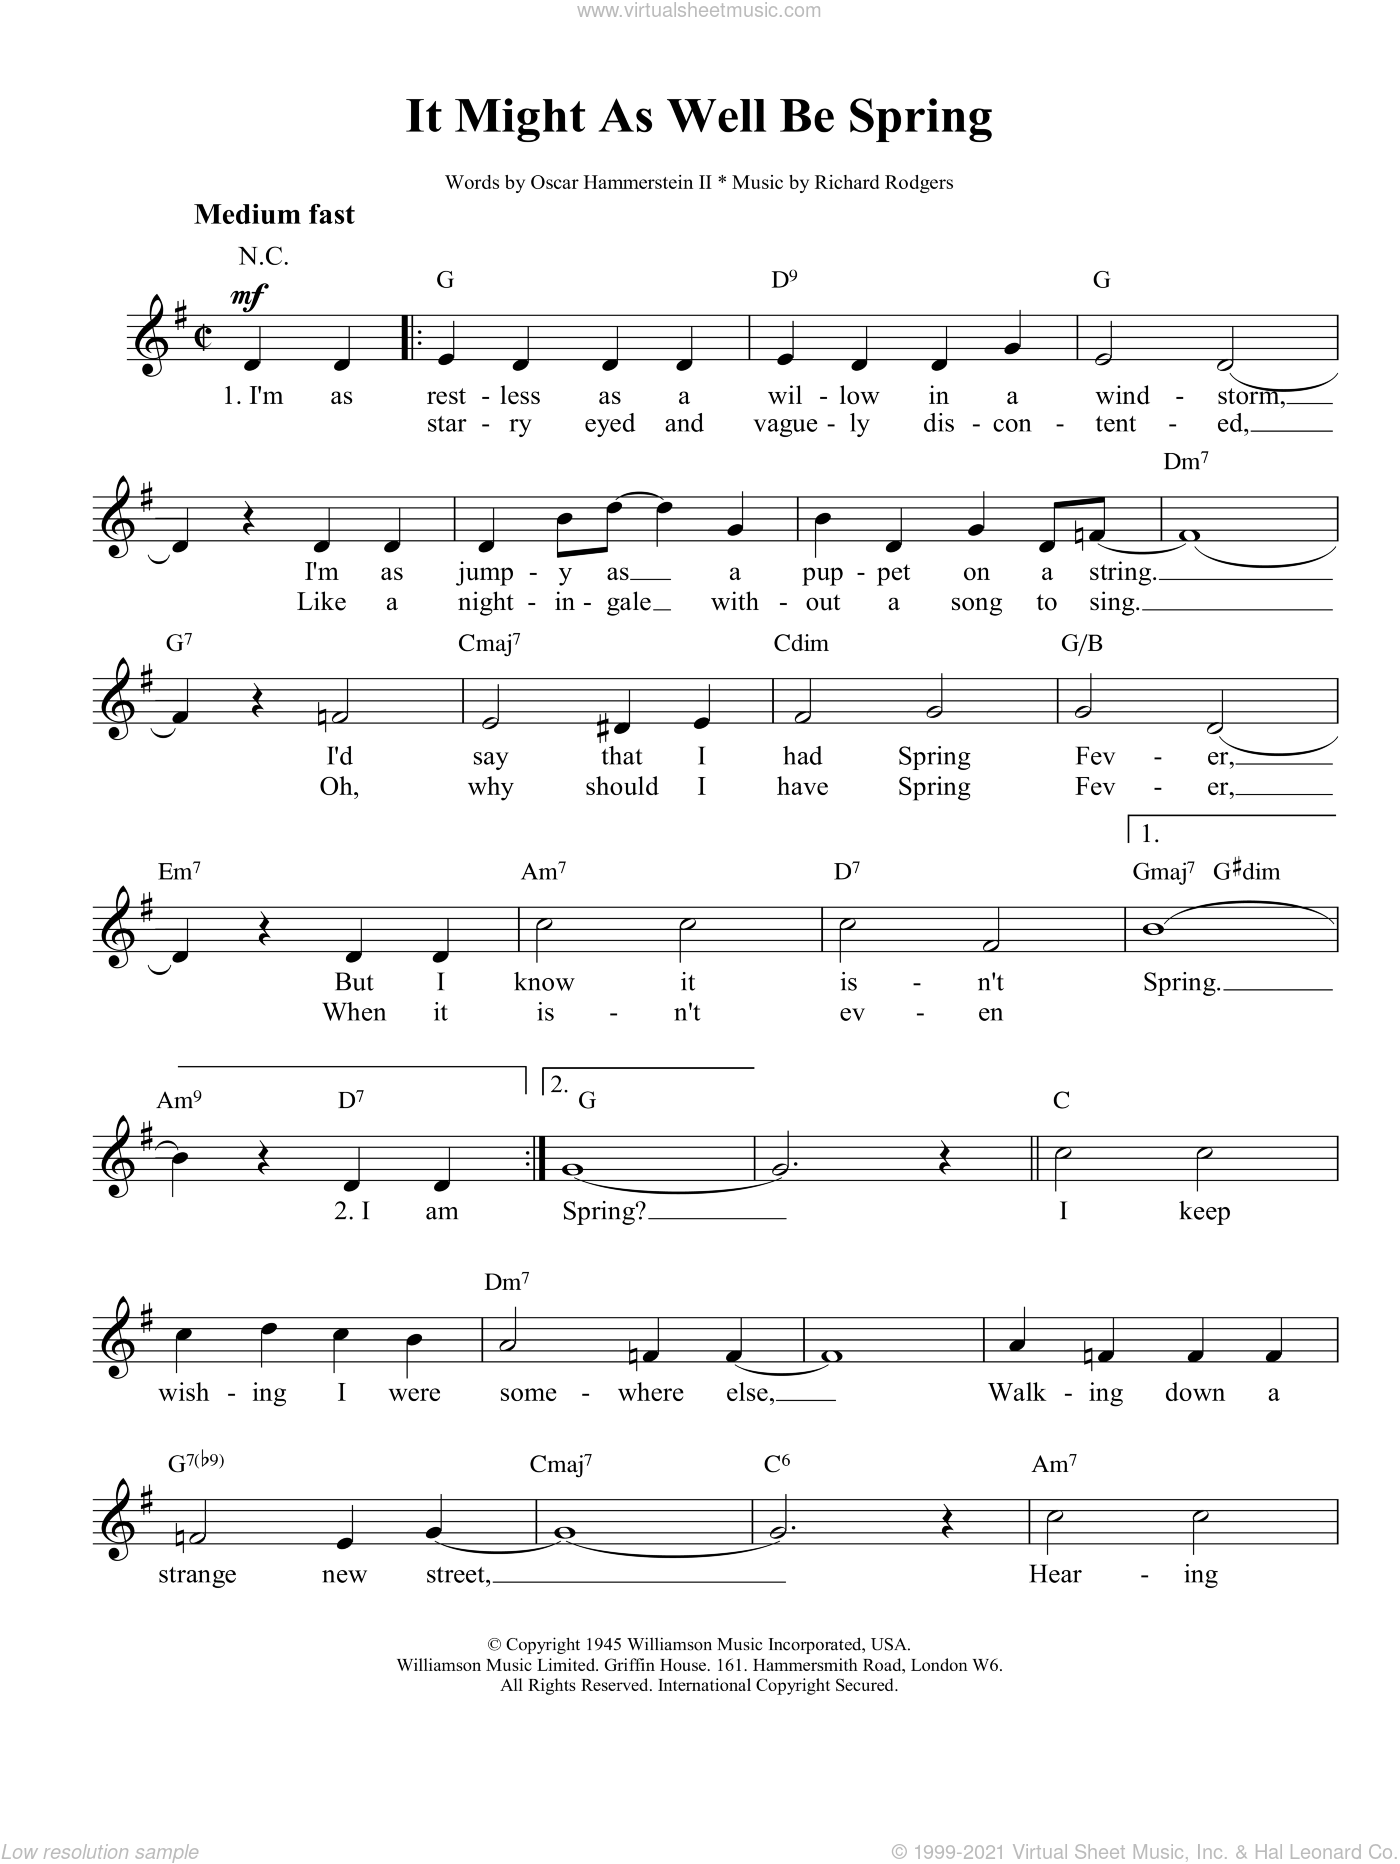 It Might As Well Be Spring sheet music for voice and other instruments (fake book) by Richard Rodgers, Rodgers & Hammerstein and Oscar II Hammerstein. Score Image Preview.